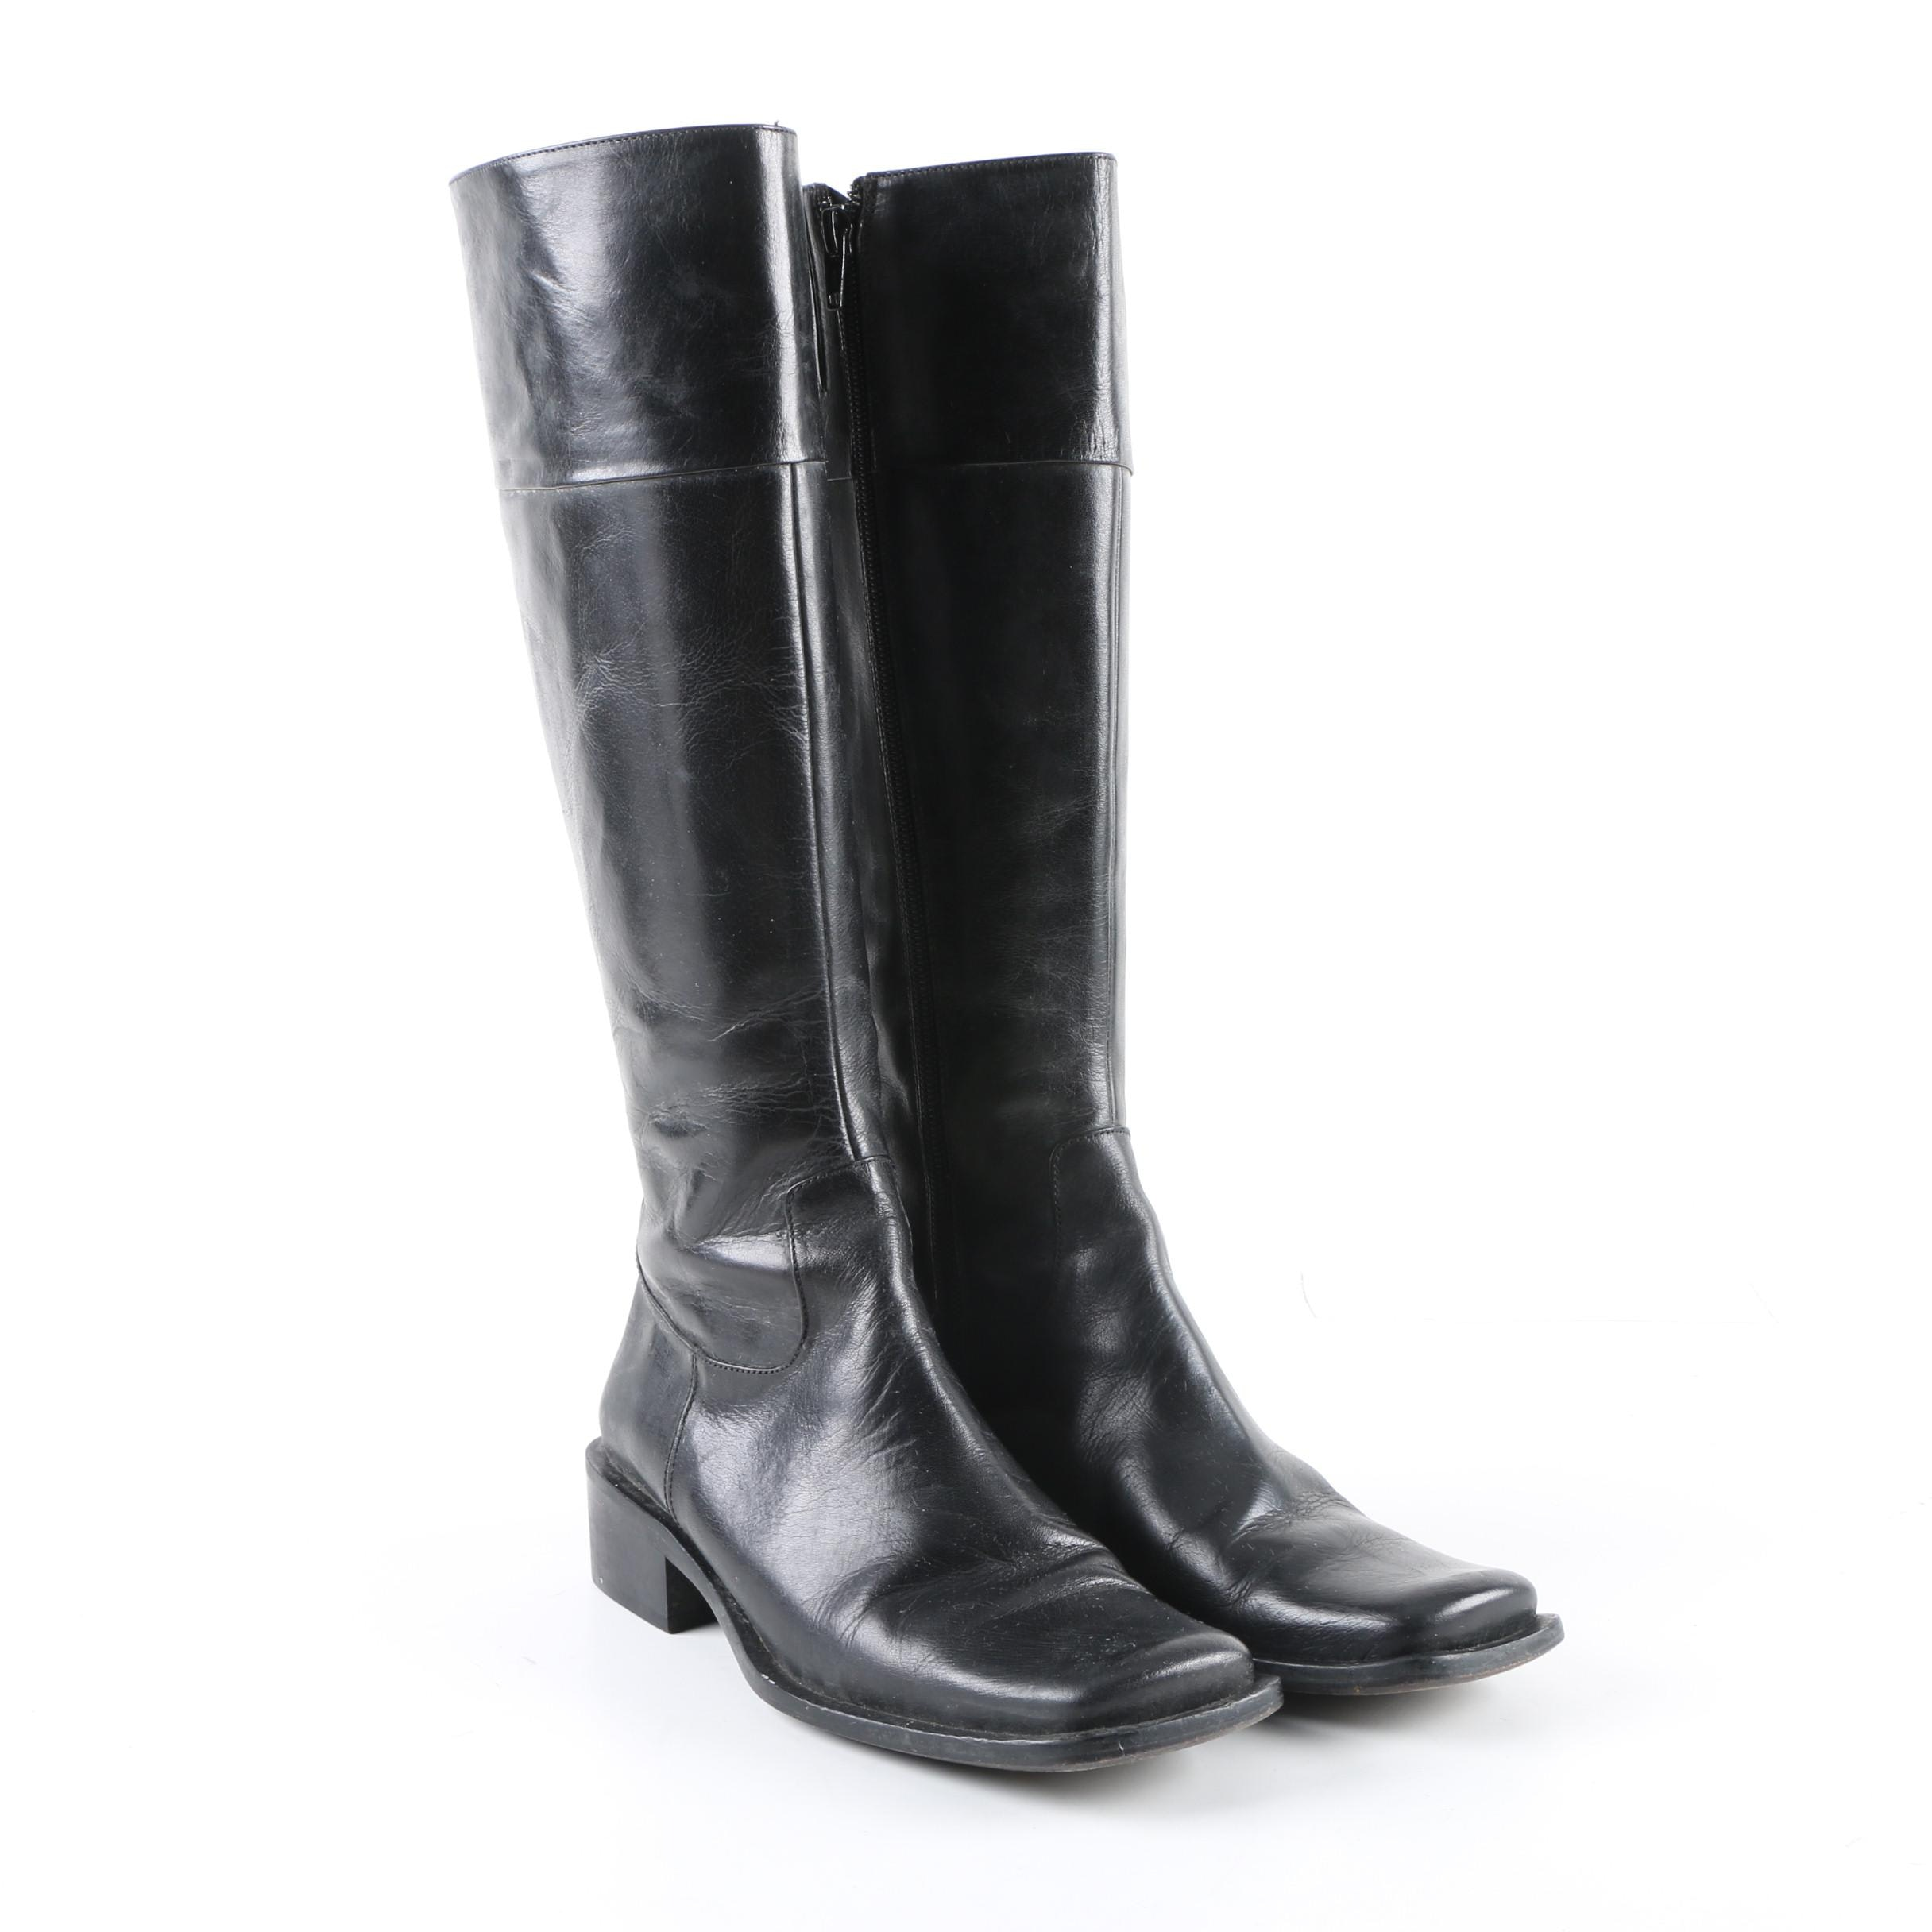 Women's Charles David Black Leather Boots